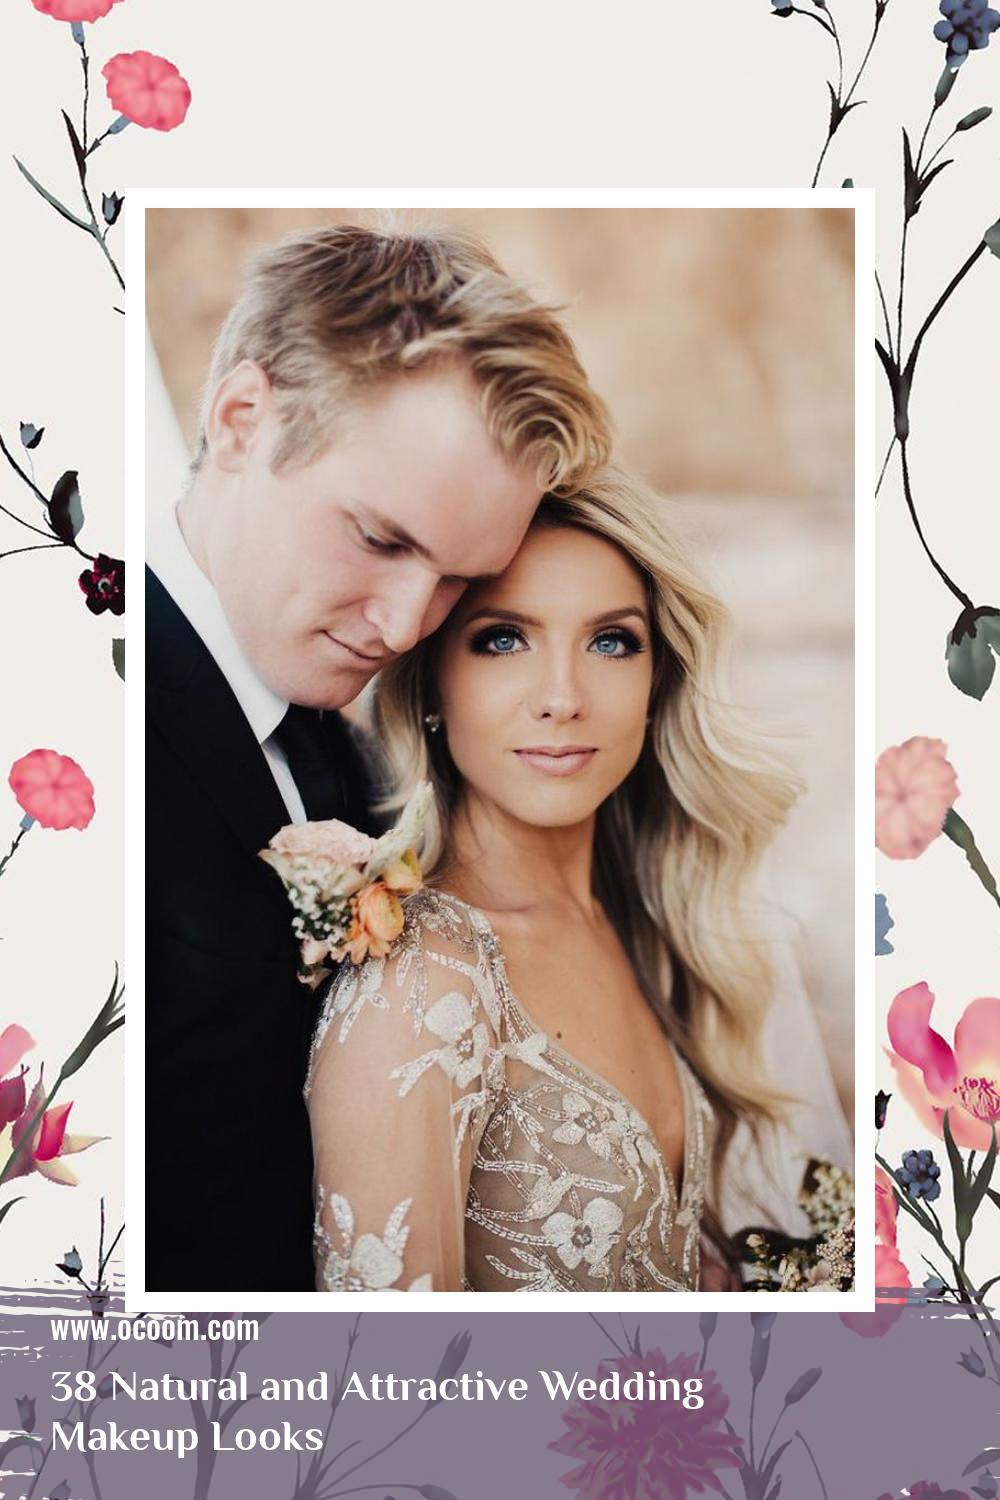 38 Natural and Attractive Wedding Makeup Looks 30